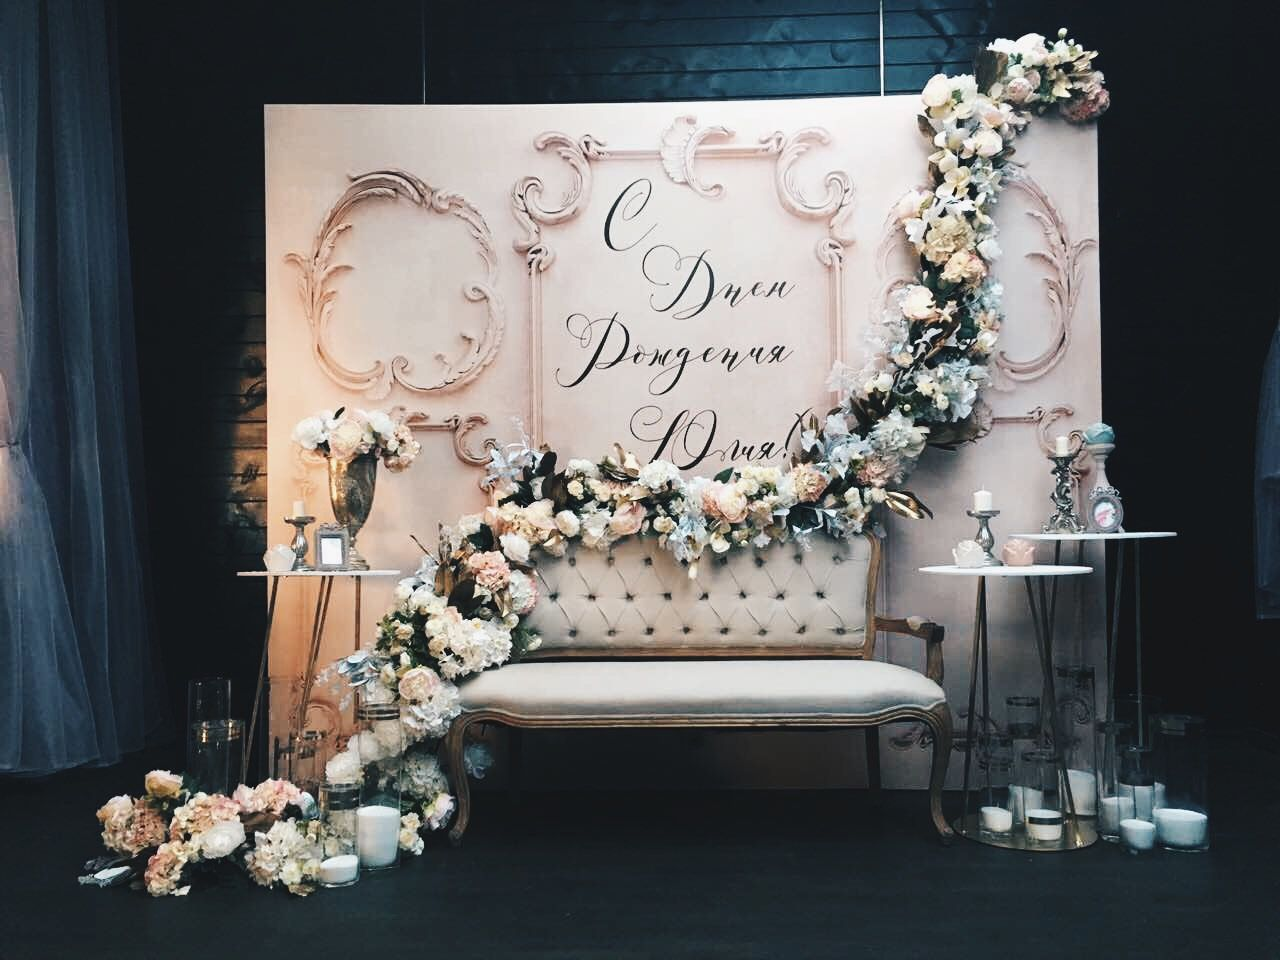 Photobooth For Her Jennyart Event Design Photo Booth Backdrop Wedding Wedding Stage Wedding Backdrop